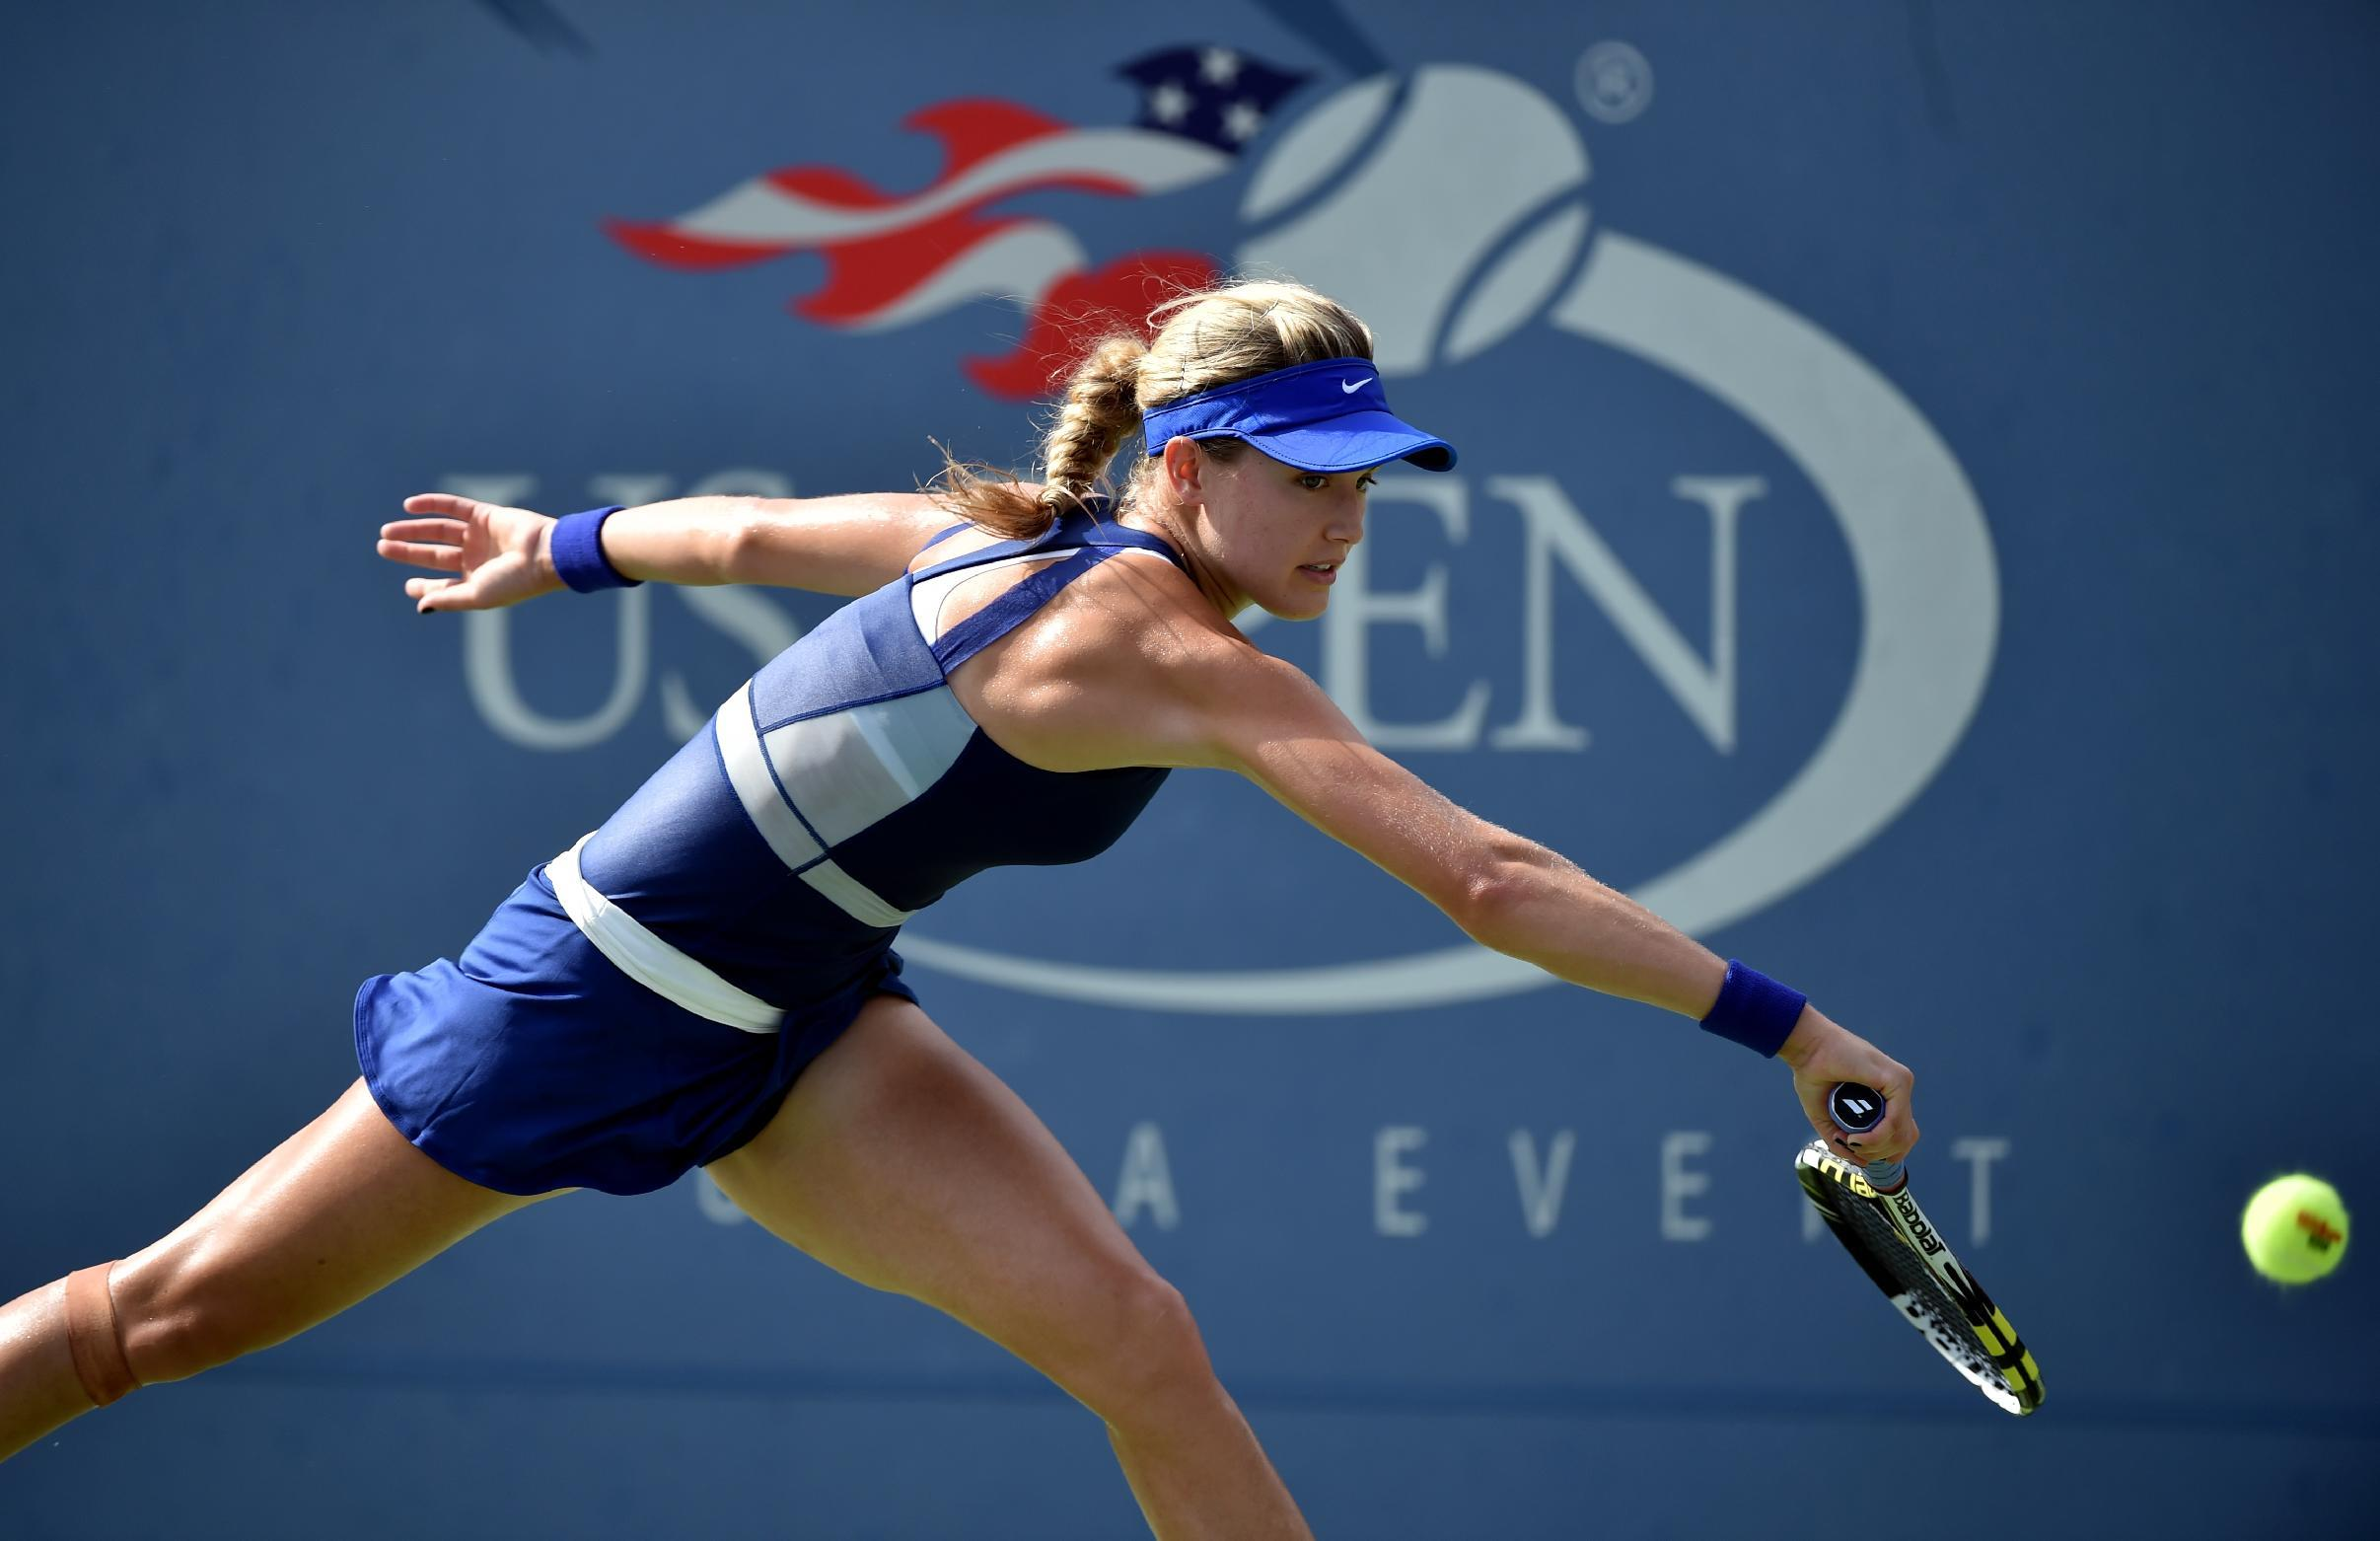 Ailing Bouchard out of US Open